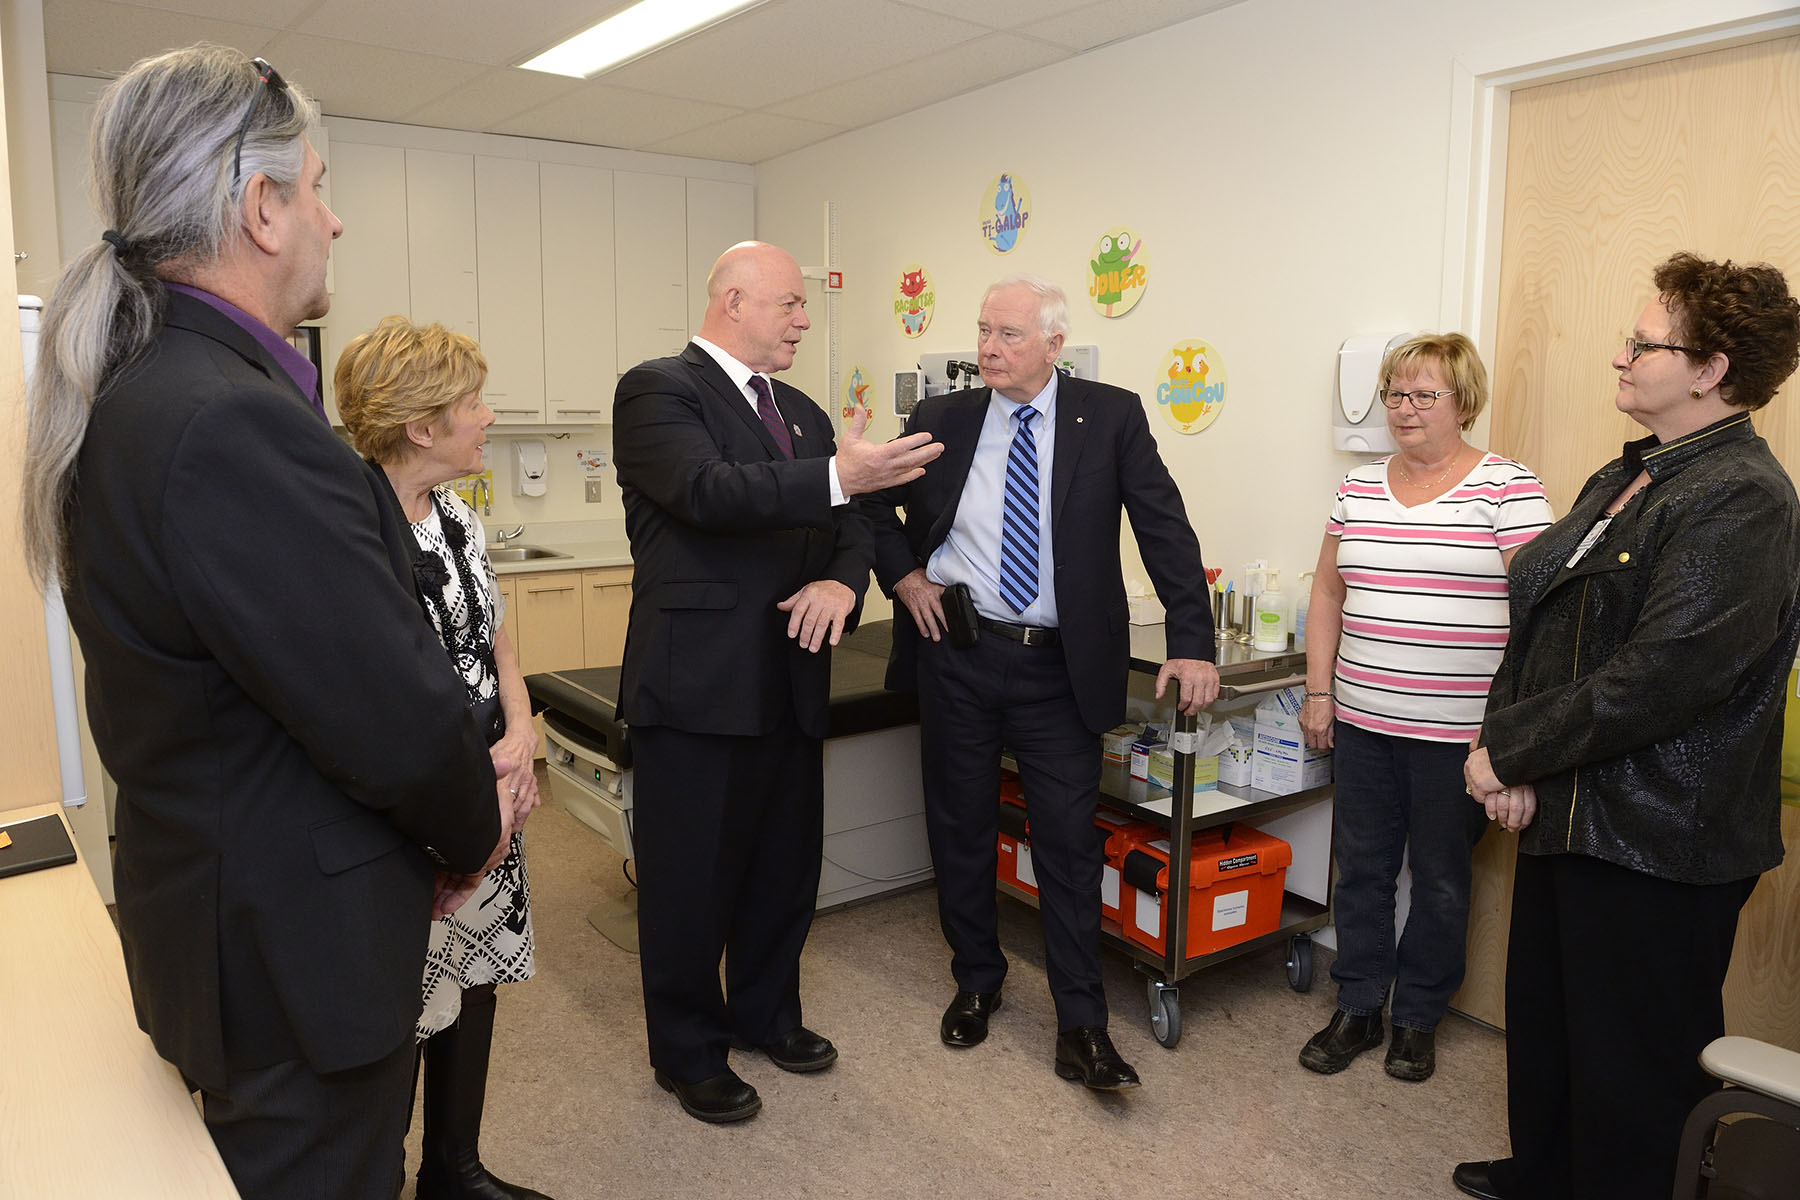 Their Excellencies met with health professionals at the Marie-Paule Sioui-Vincent Health Centre.